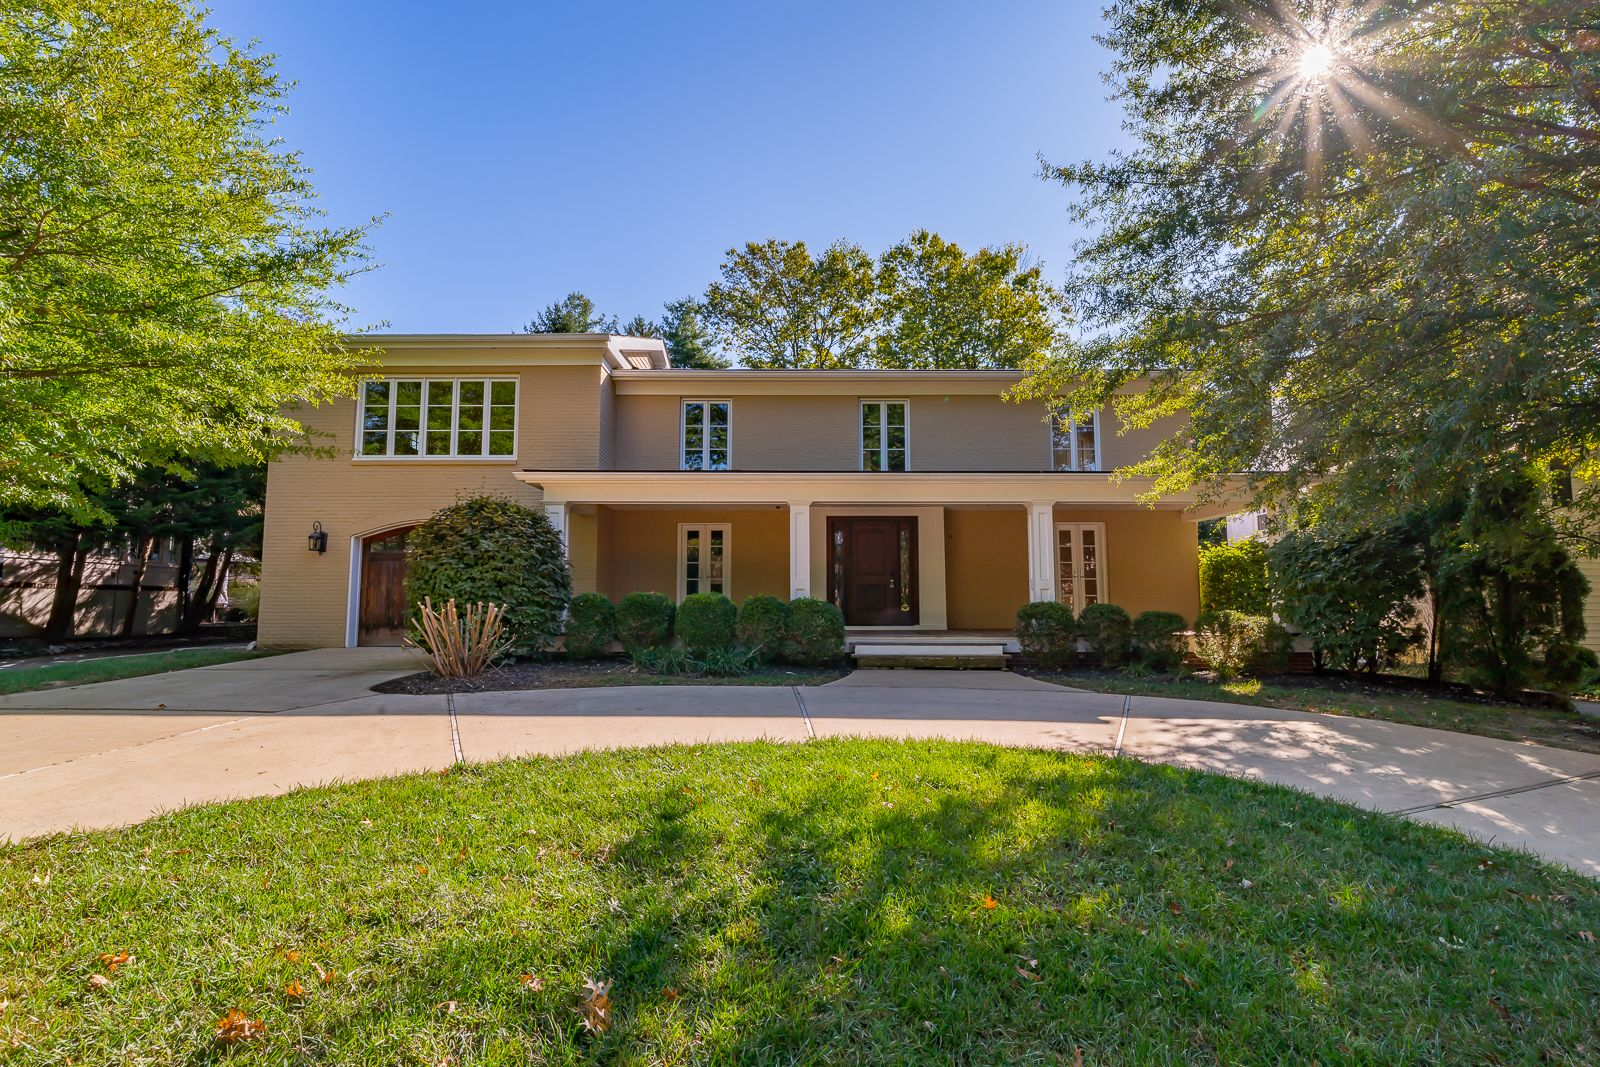 713 Braeview Rd, Louisville, KY